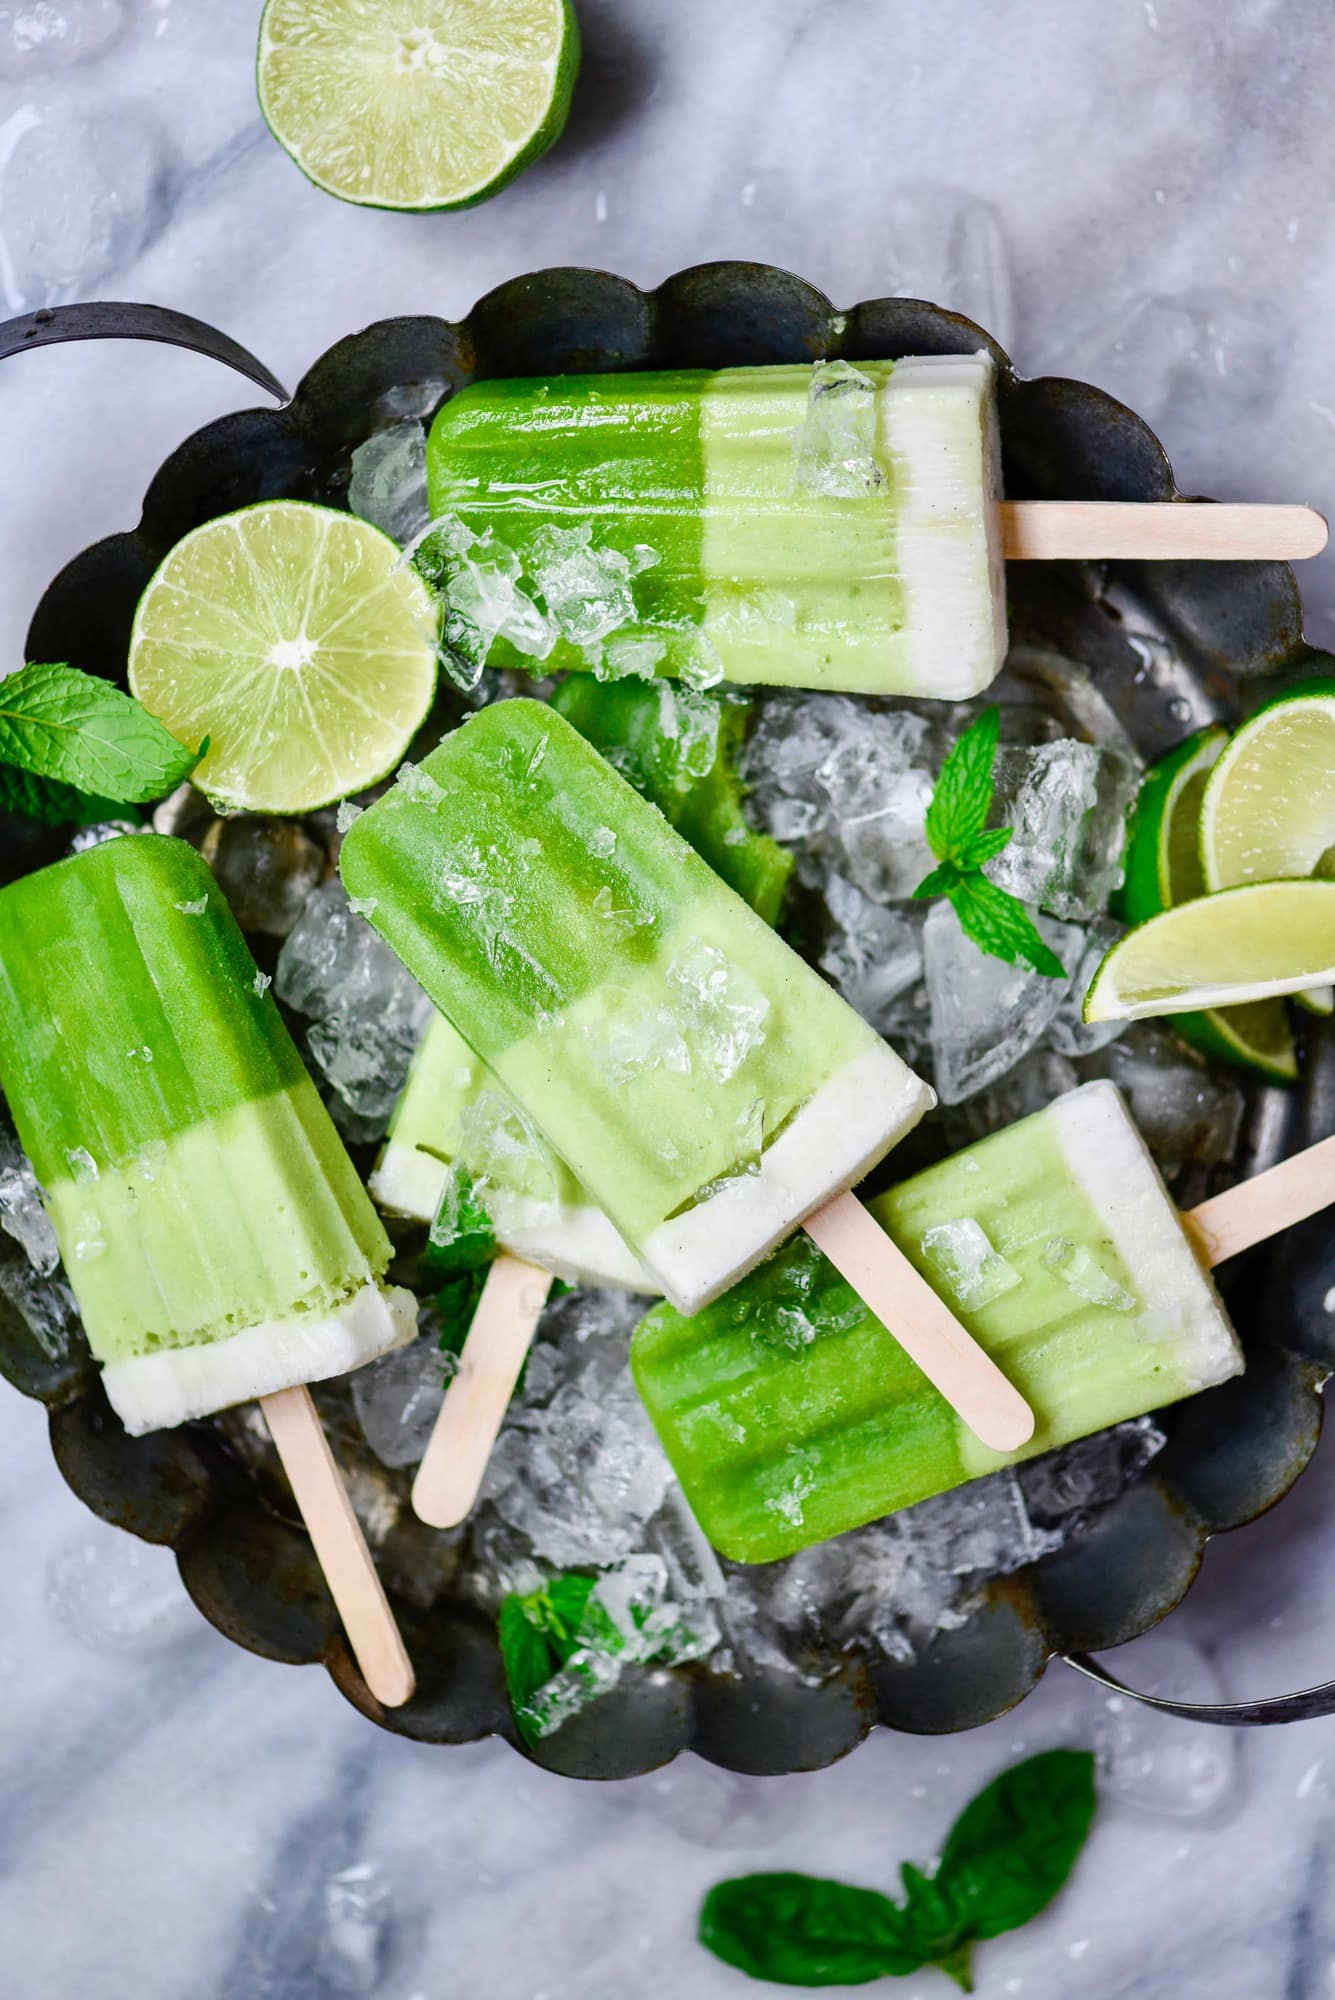 Overhead of green popsicles on a circular tray full of ice